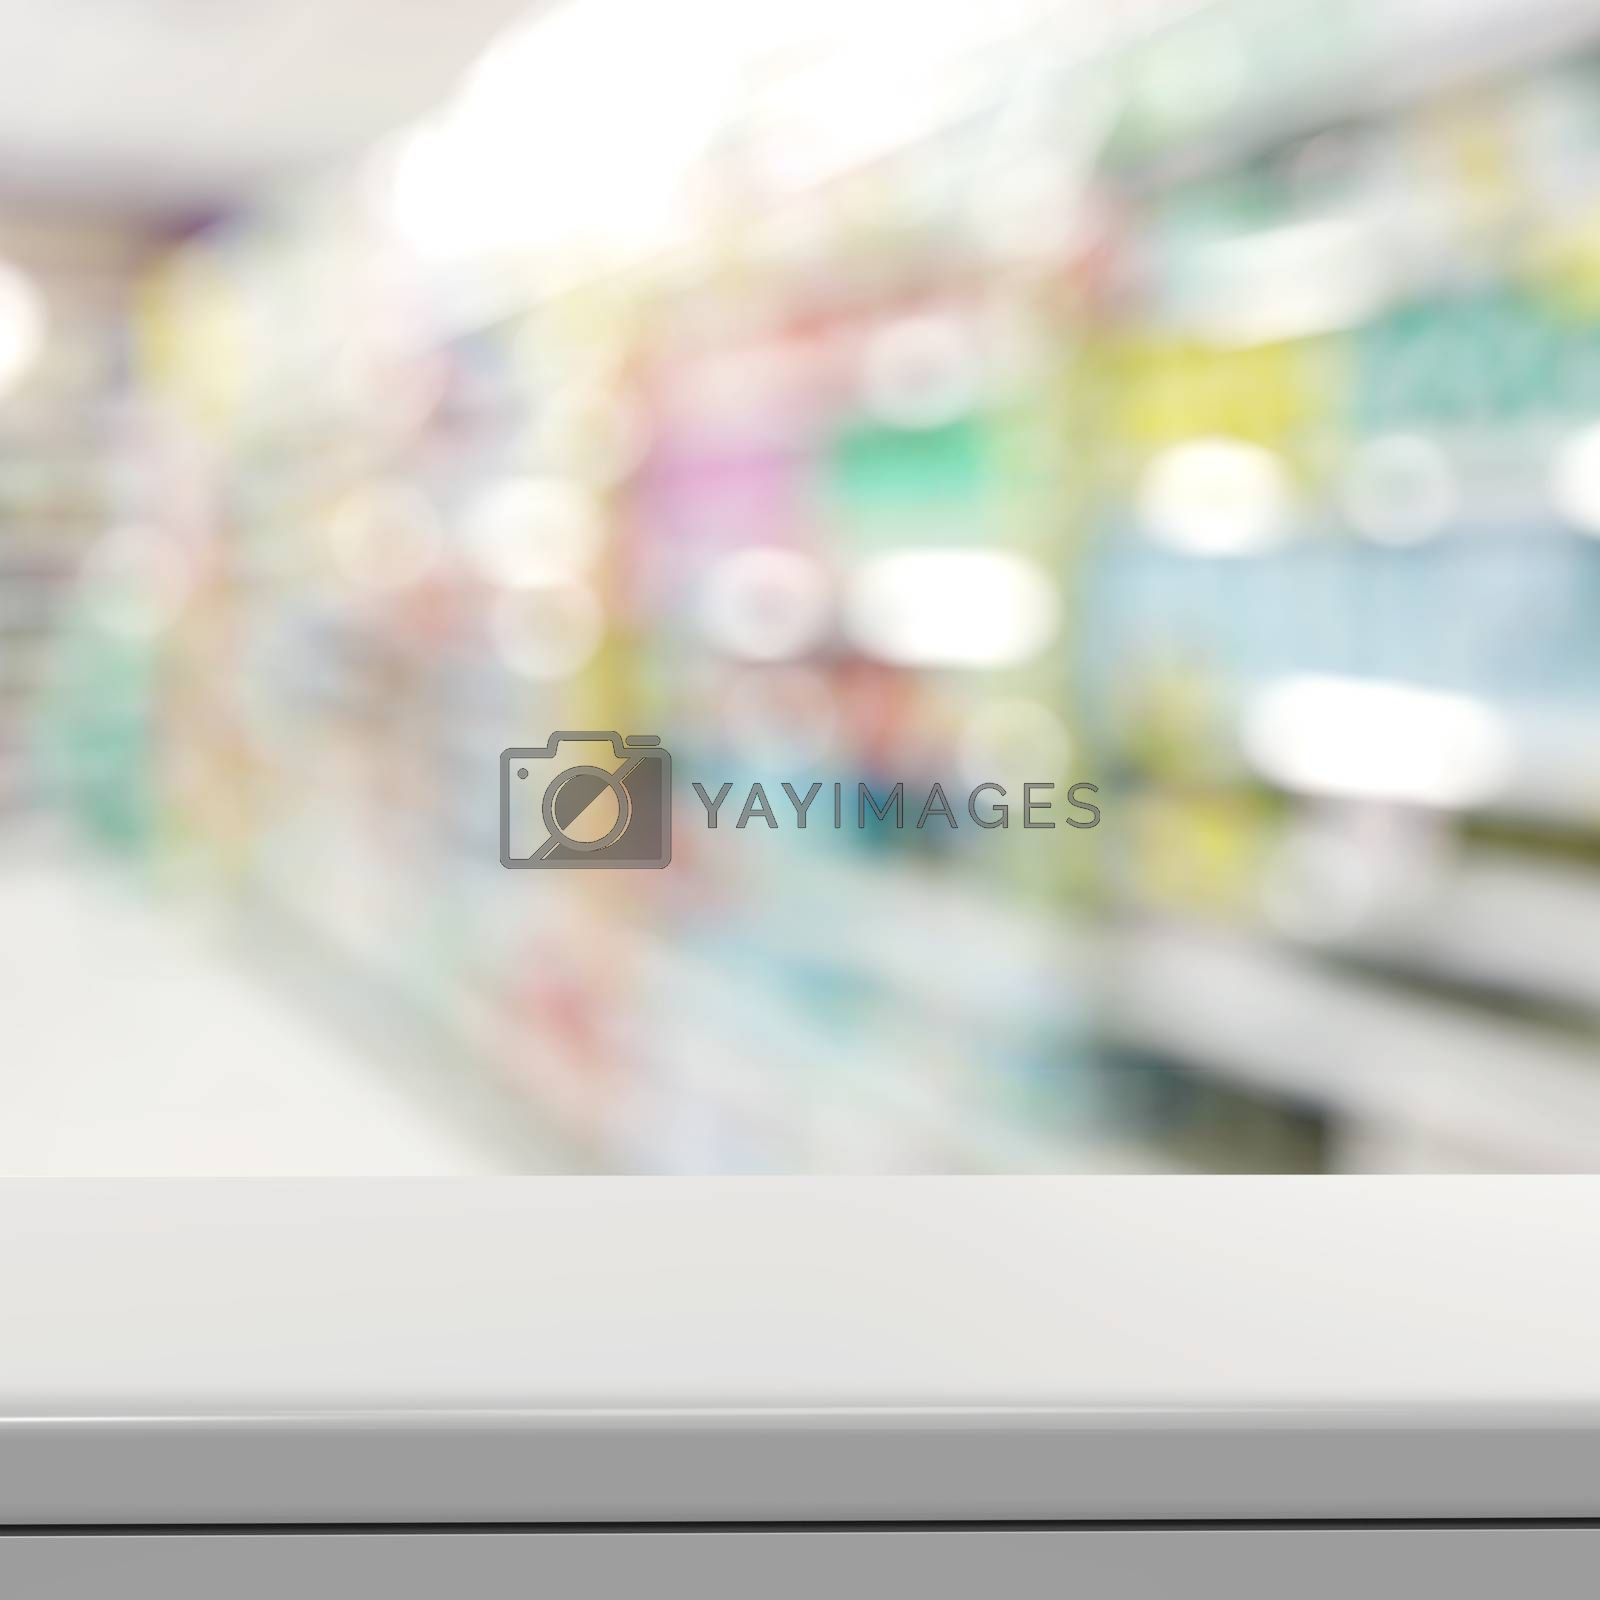 Royalty free image of Empty laminate shelf and blurred  background for business produc by everythingpossible